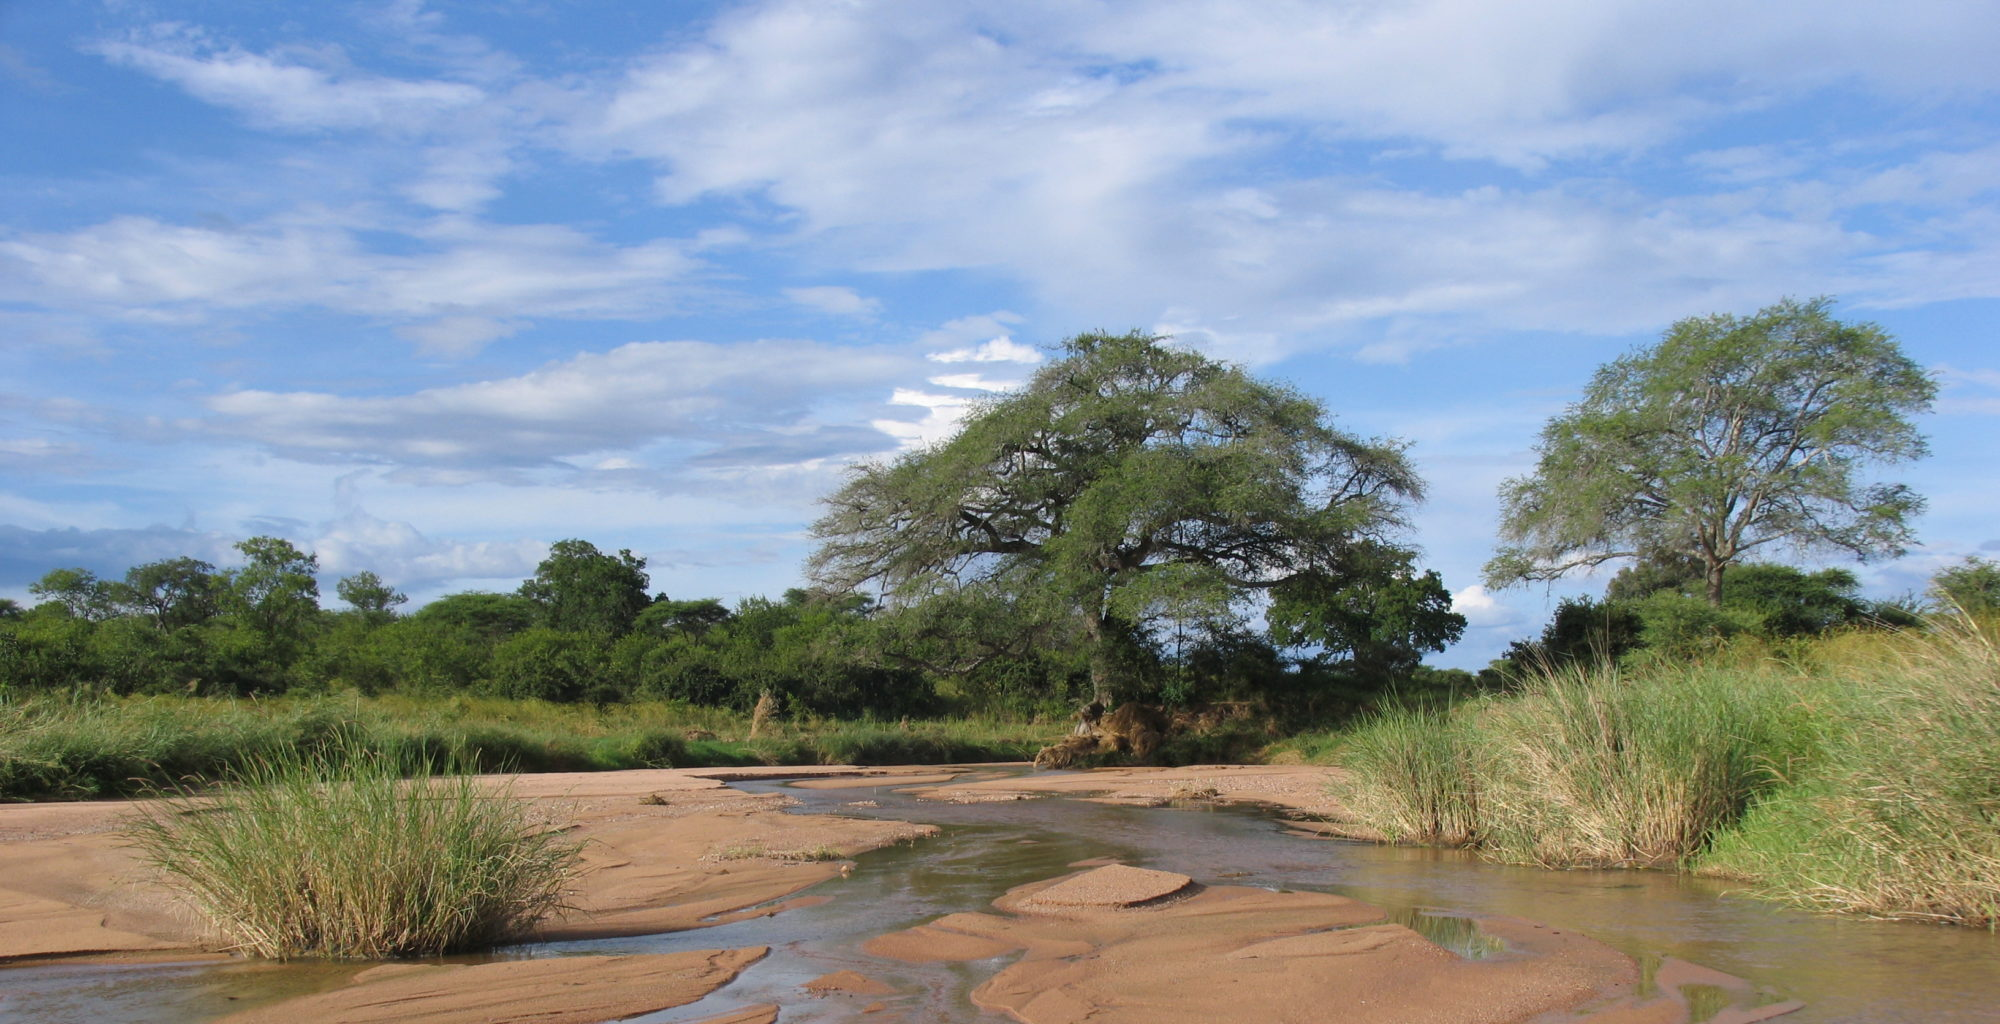 Tanzania-Ruaha-National-Park-Riverbed